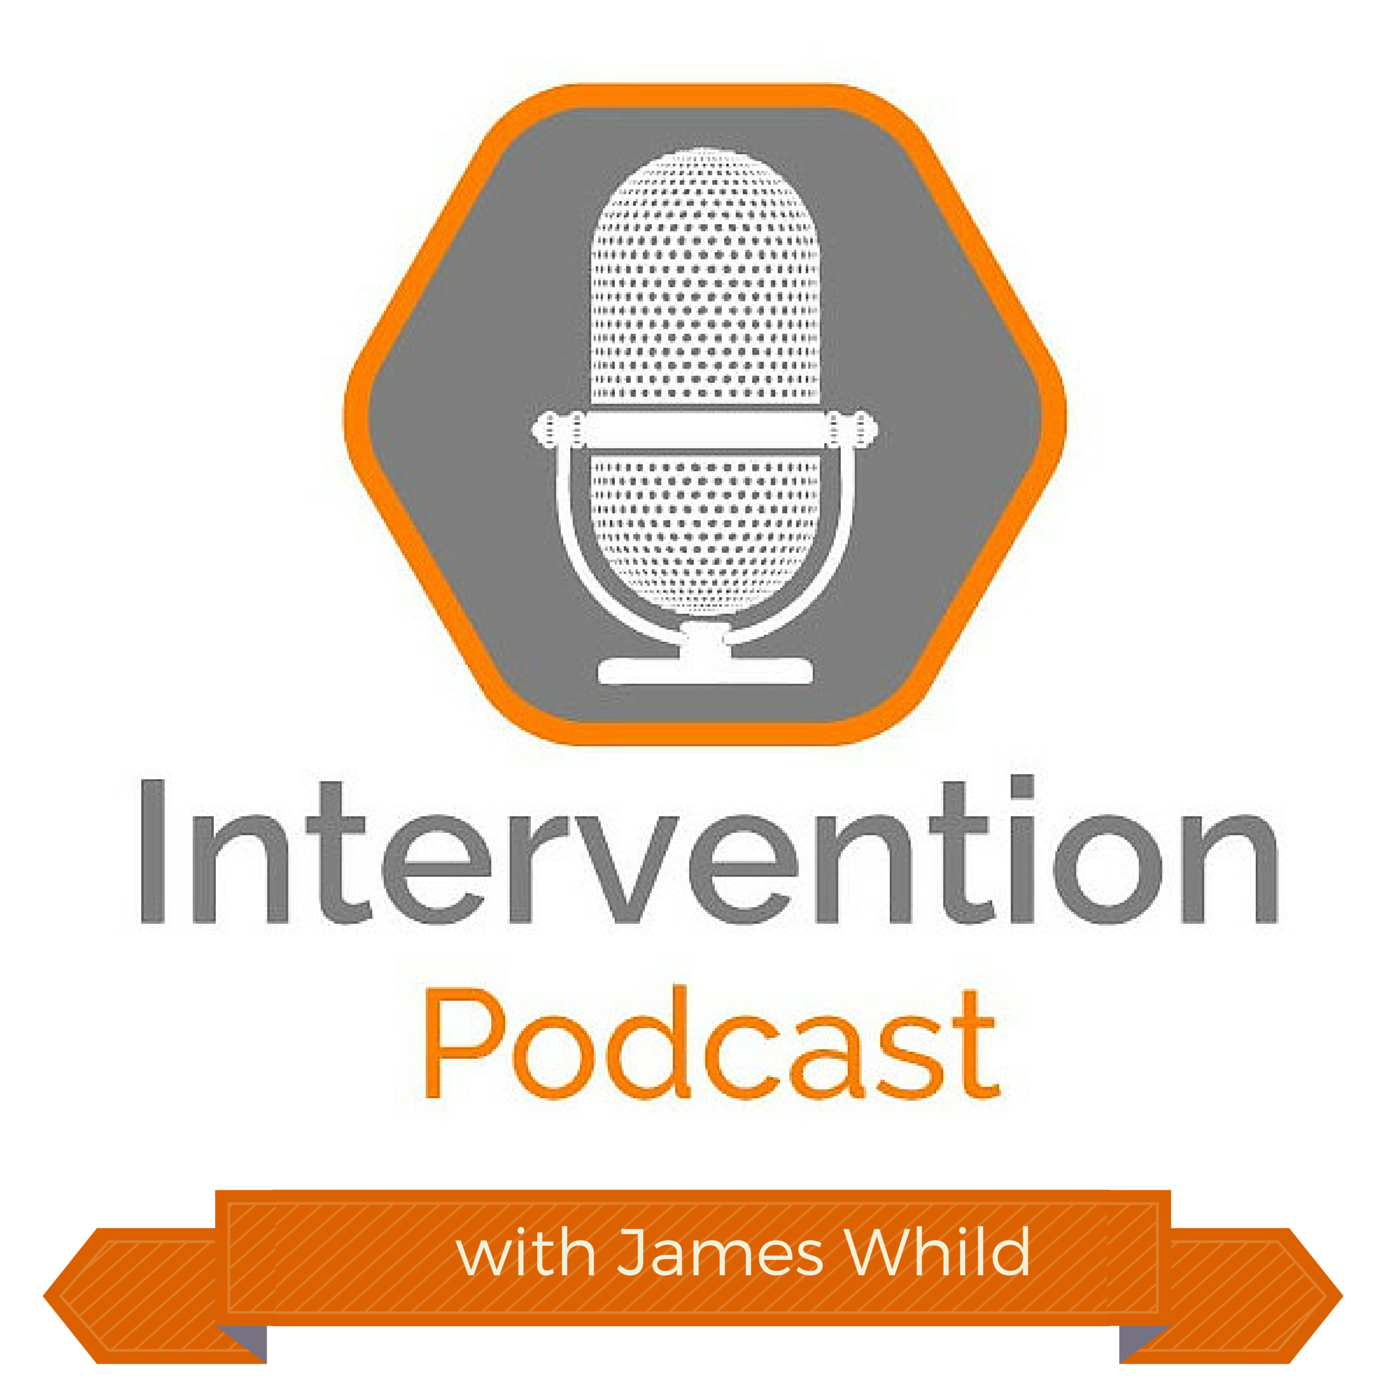 Intervention Podcast